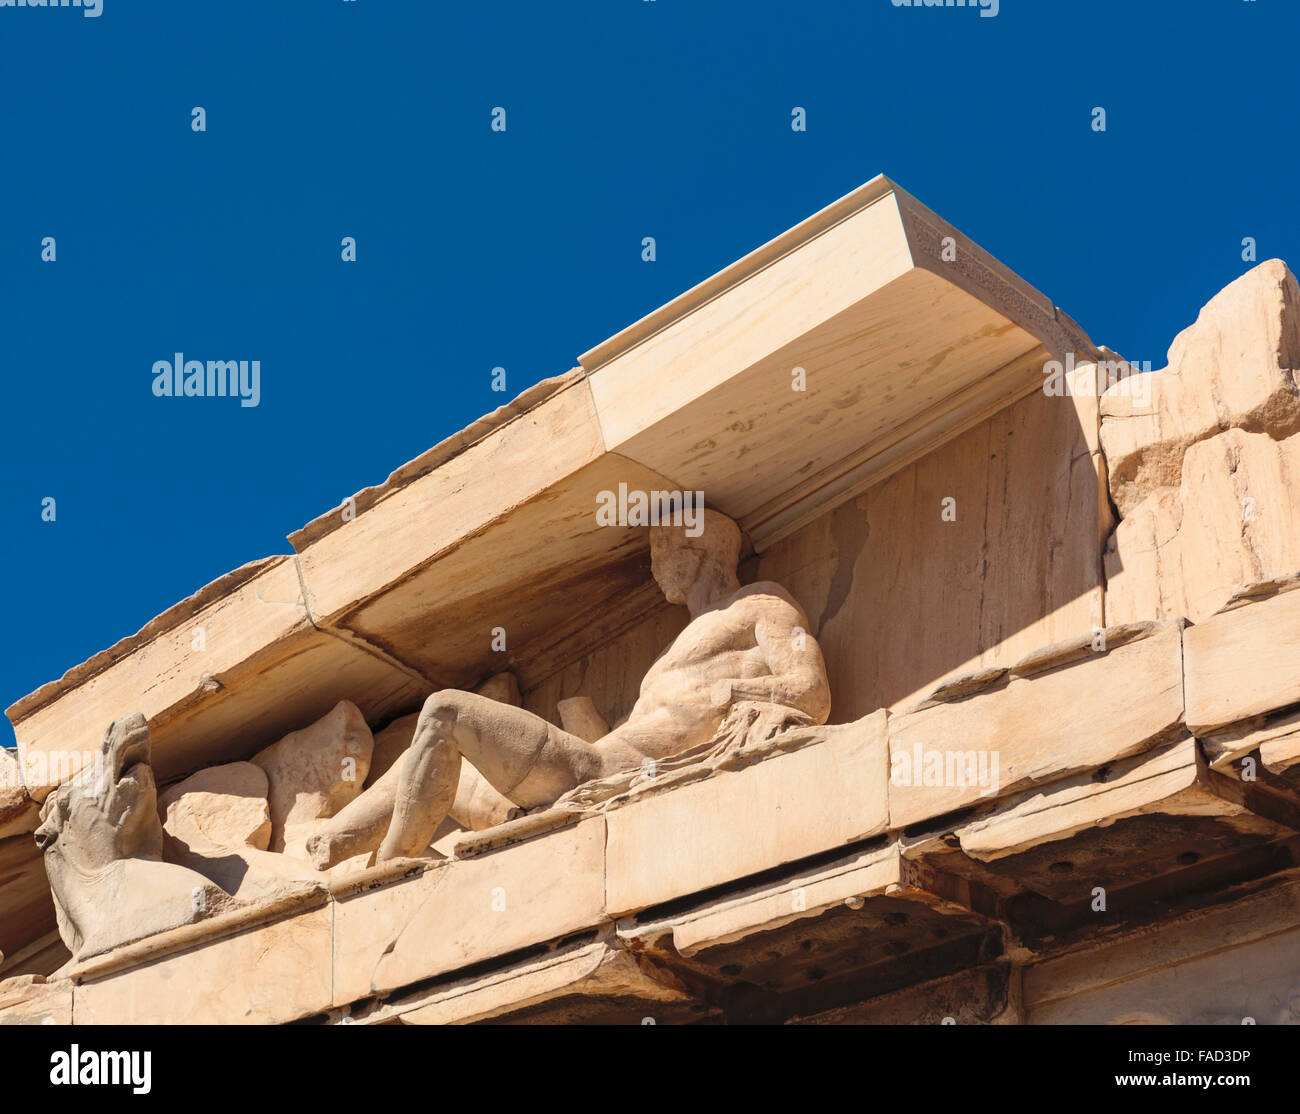 Athens, Attica, Greece.  Eastern pediment of the Parthenon showing surviving sculptures. - Stock Image